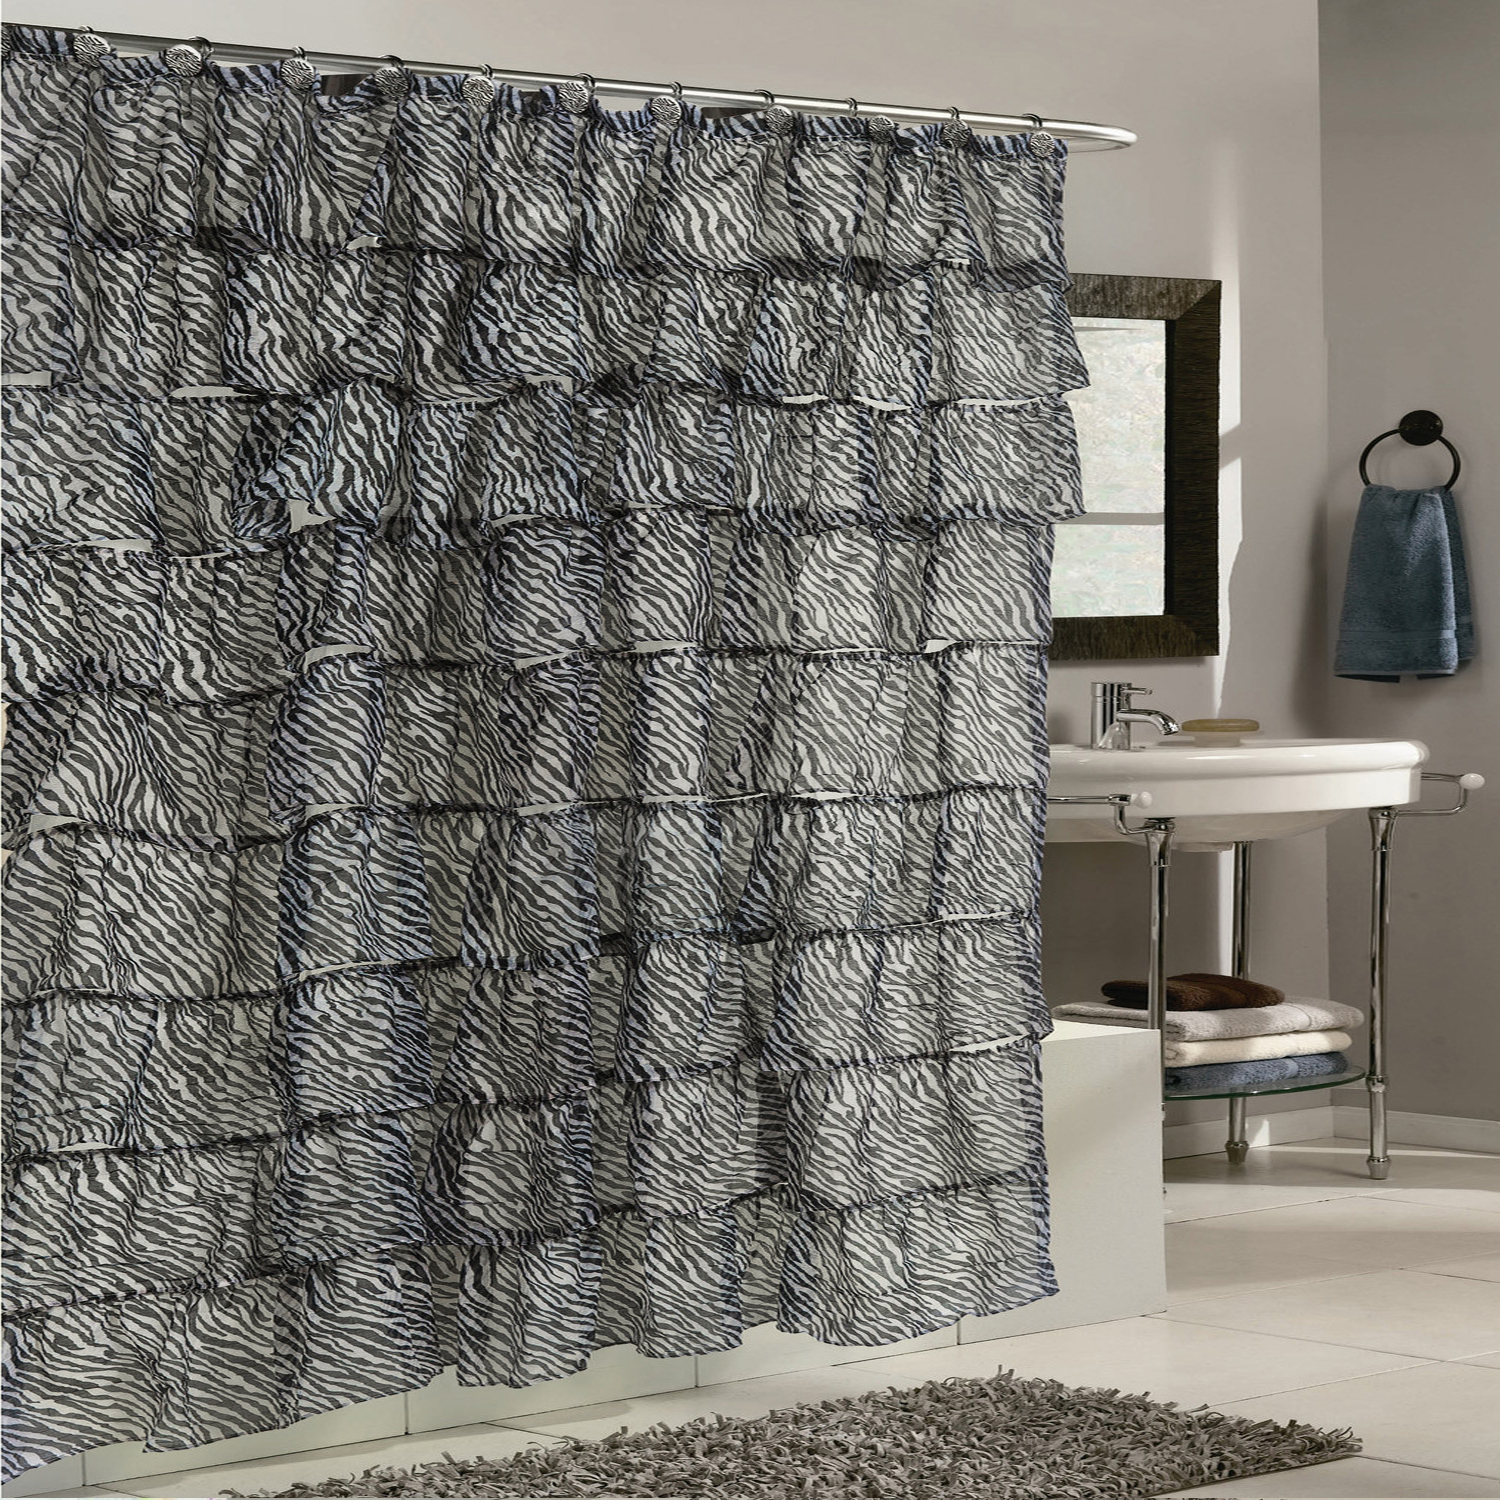 "Details About Elegant Zebra Pattern Crushed Voile Ruffled Tier Shower Curtain 70"" X 72"" Intended For Well Liked Elegant Crushed Voile Ruffle Window Curtain Pieces (View 12 of 20)"